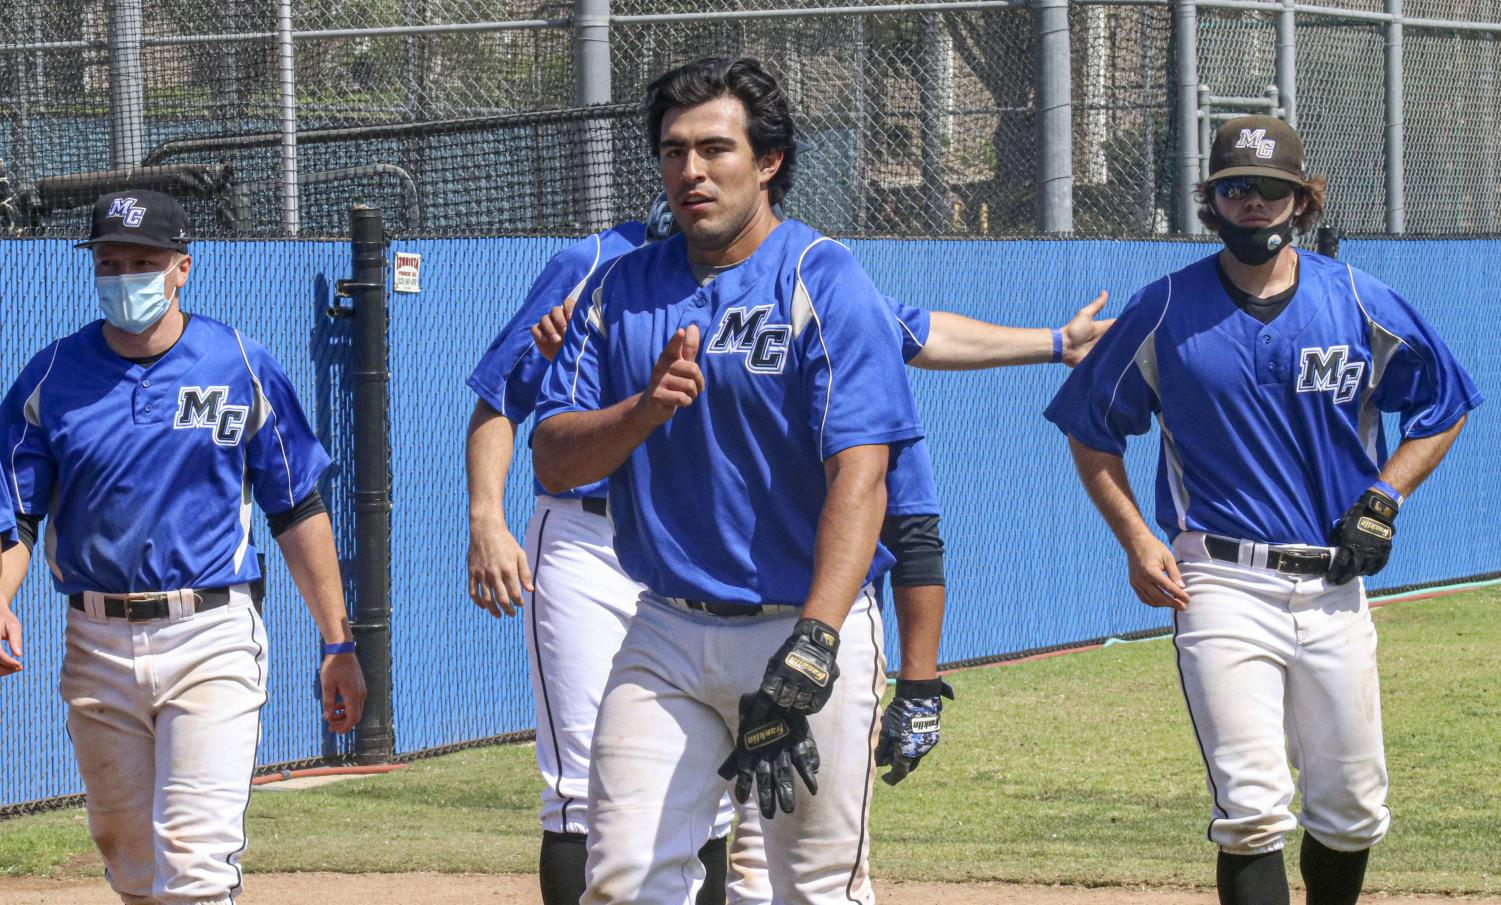 Moorpark's sophomore infielder Alex Vega poses for a picture after his game-winning RBI single to right field versus Ventura College on April 15. Vega finished the day with two hits, an RBI and a walk.